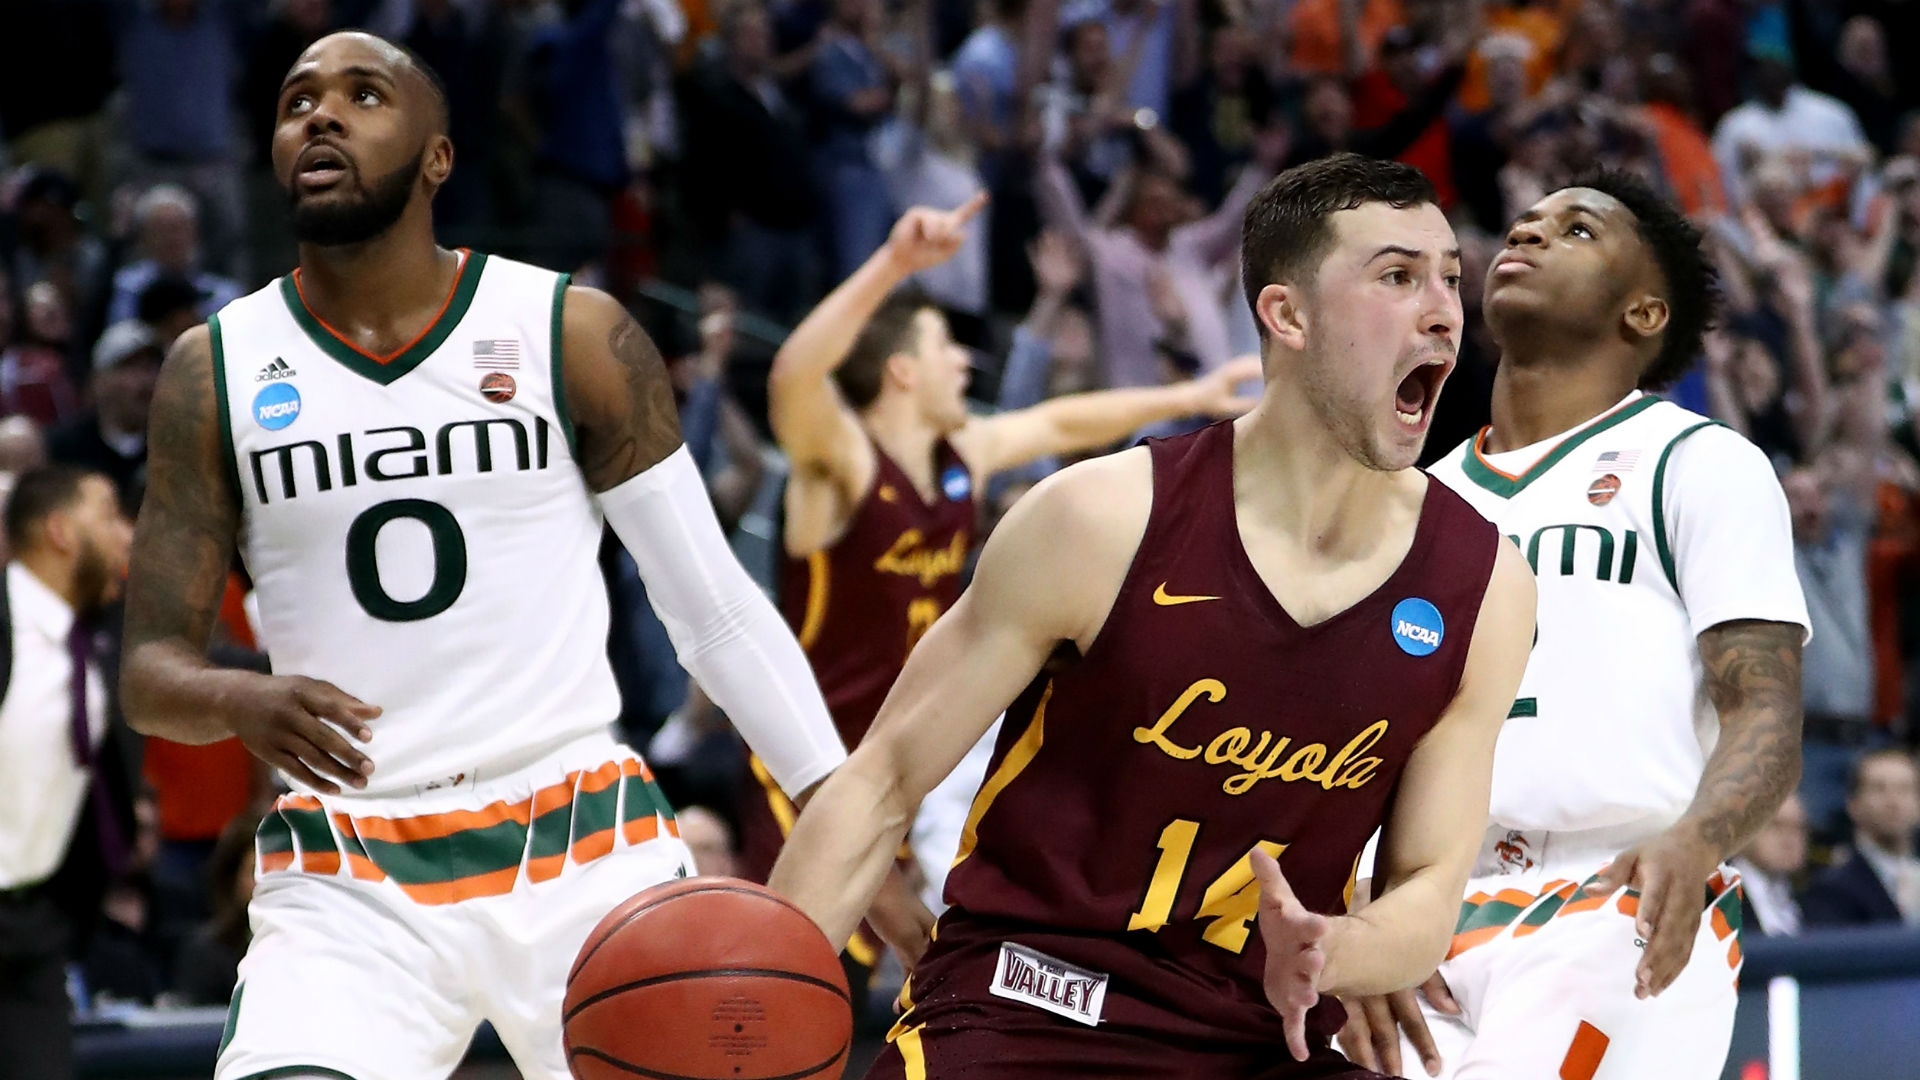 Tennessee vs. Loyola-Chicago - 3/17/18 College Basketball Pick, Odds, and Prediction